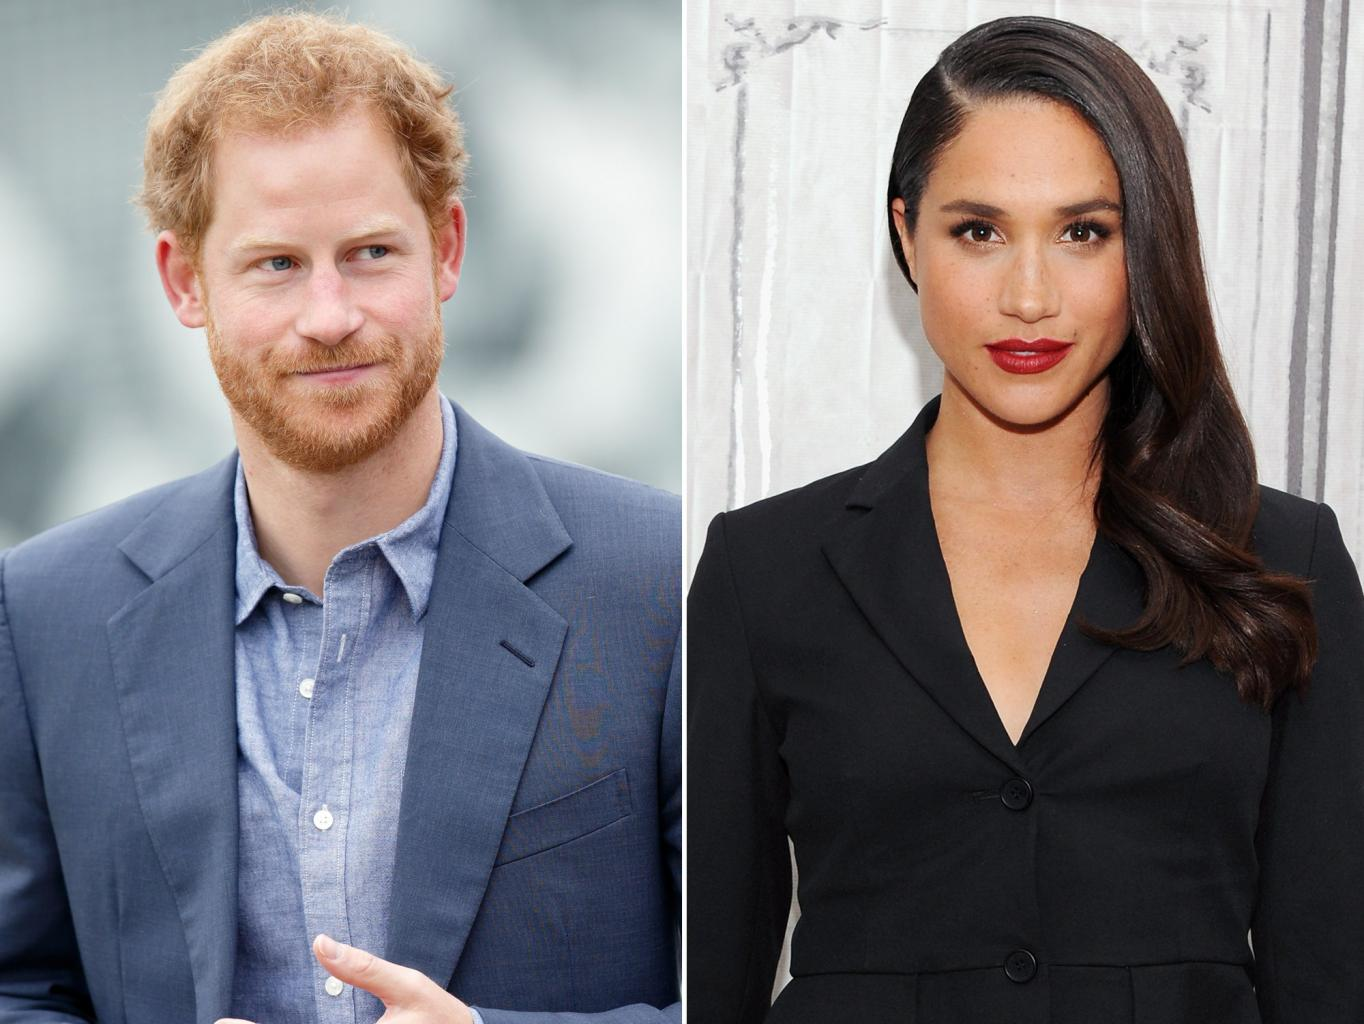 Prince Harry Confirms He Is Dating Meghan Markle as He Defends Her from Racist, Sexist Abuse